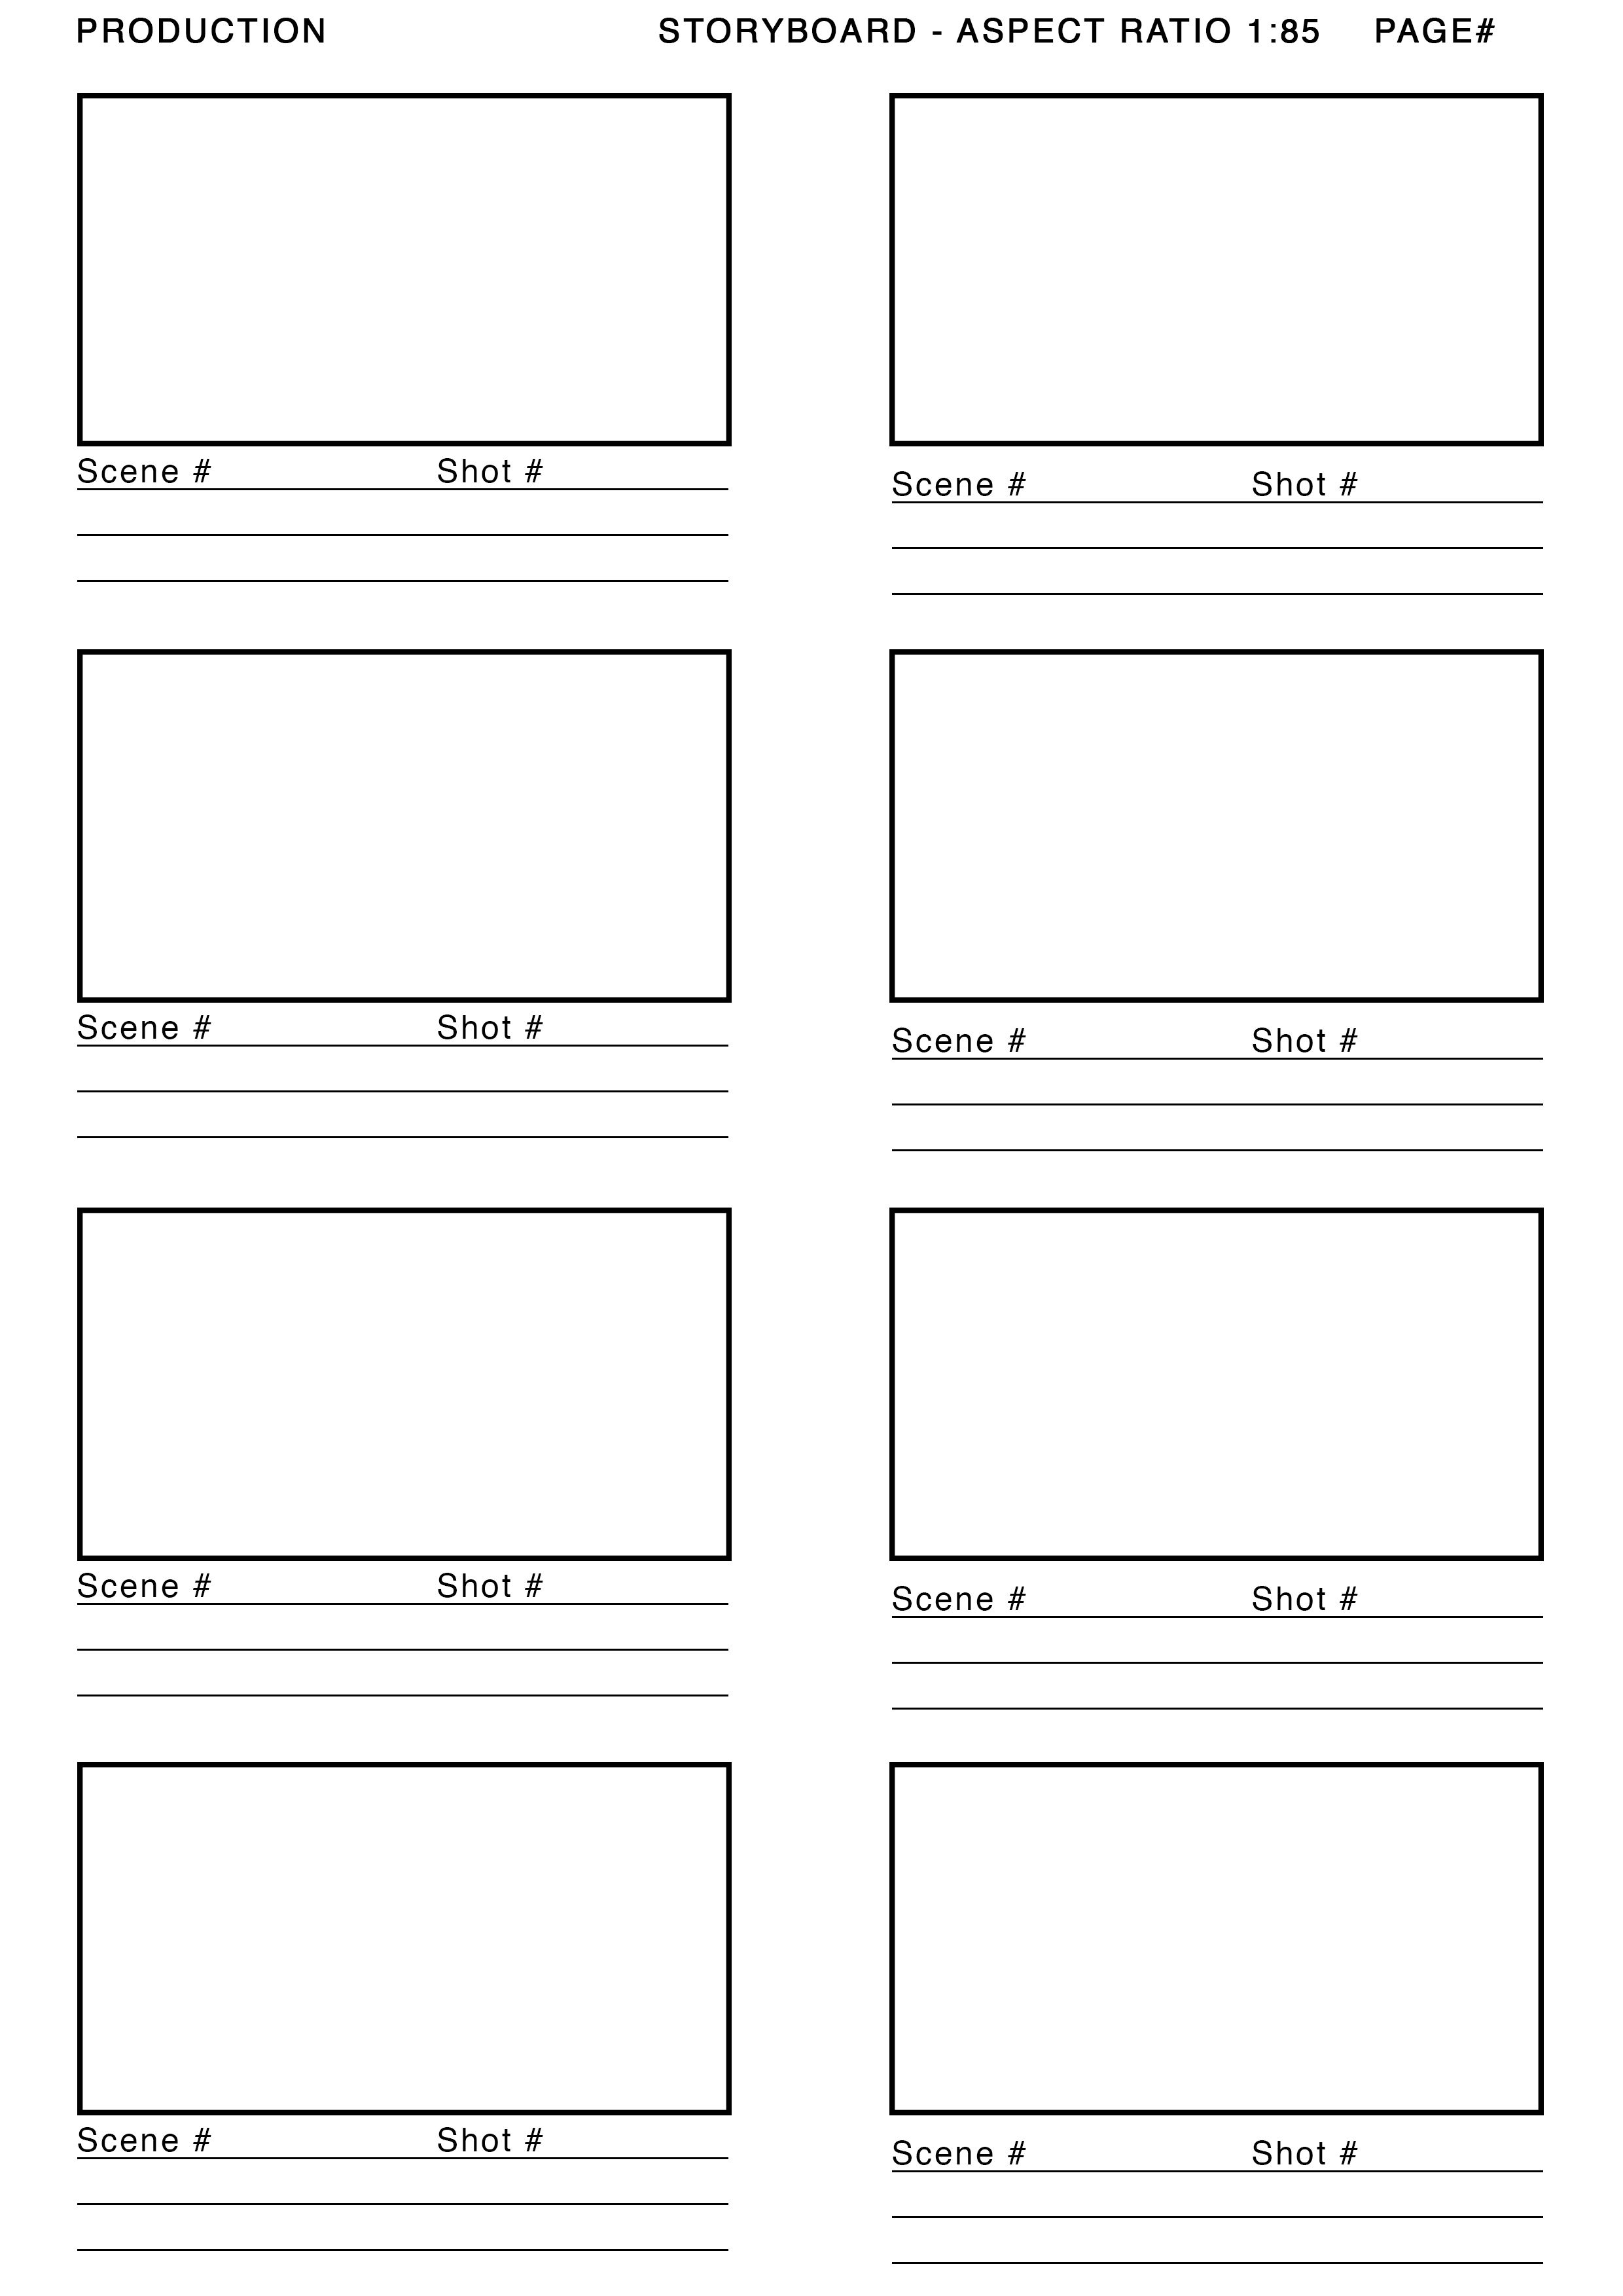 1.85 aspect ratio storyboard template - Google Search | illustrator ...